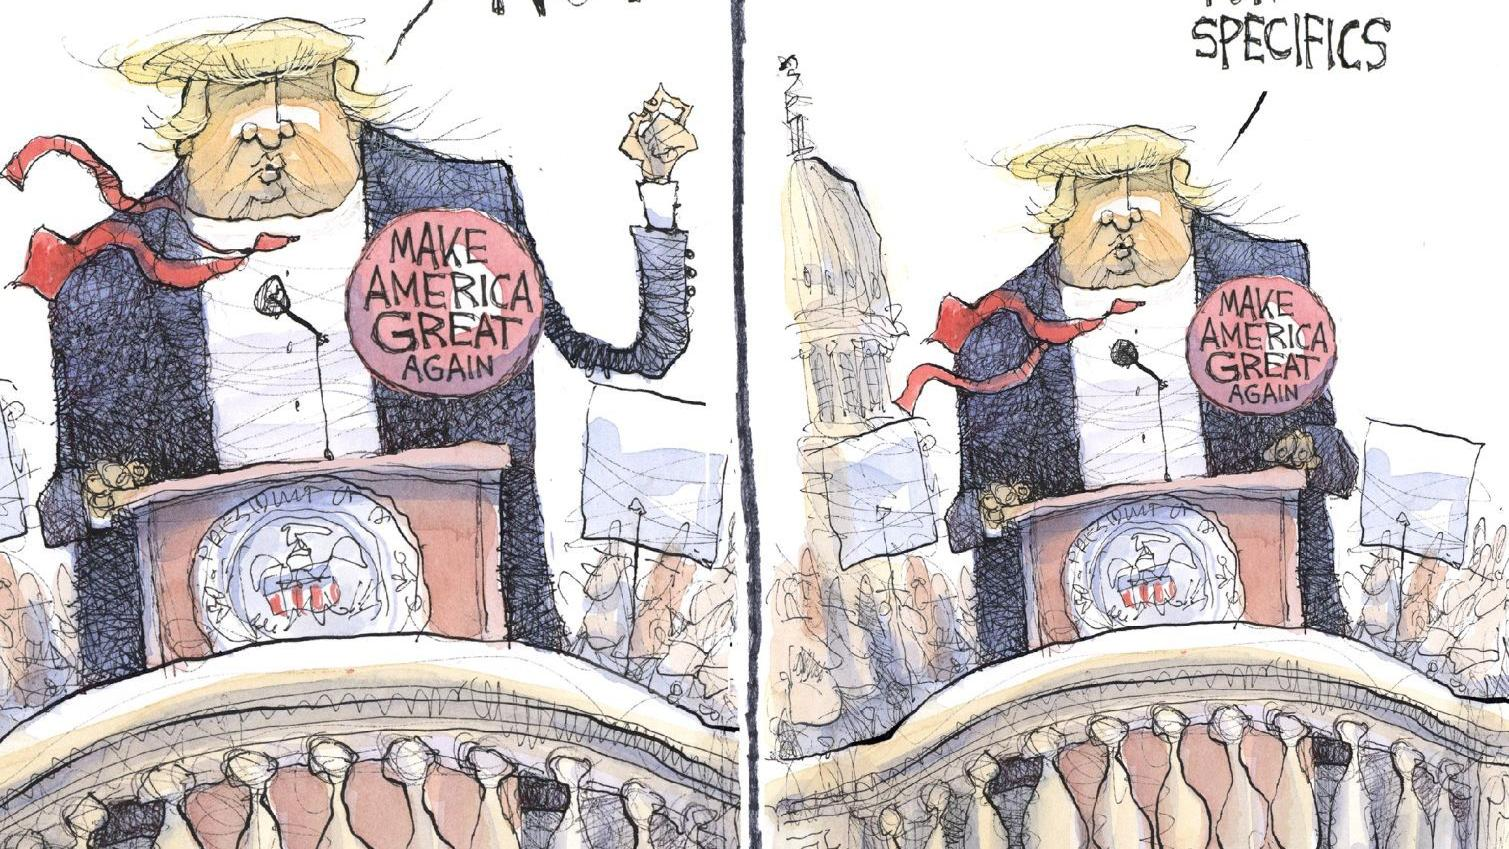 Year of plenty for editorial cartoonists